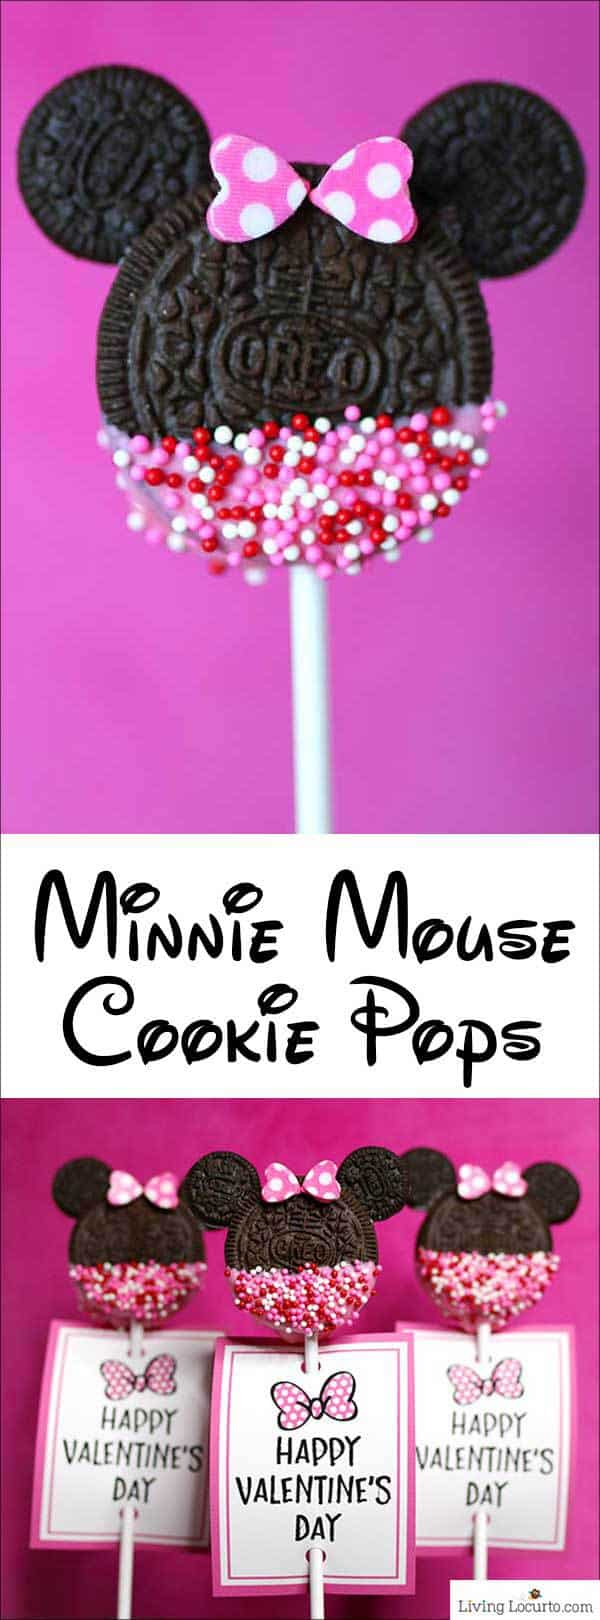 Minnie Mouse Cookie Pops are an easy Disney party dessert made with OREO cookies and free printable Valentine's Day tags. Cute Valentine cookie recipe. #disney #cookies